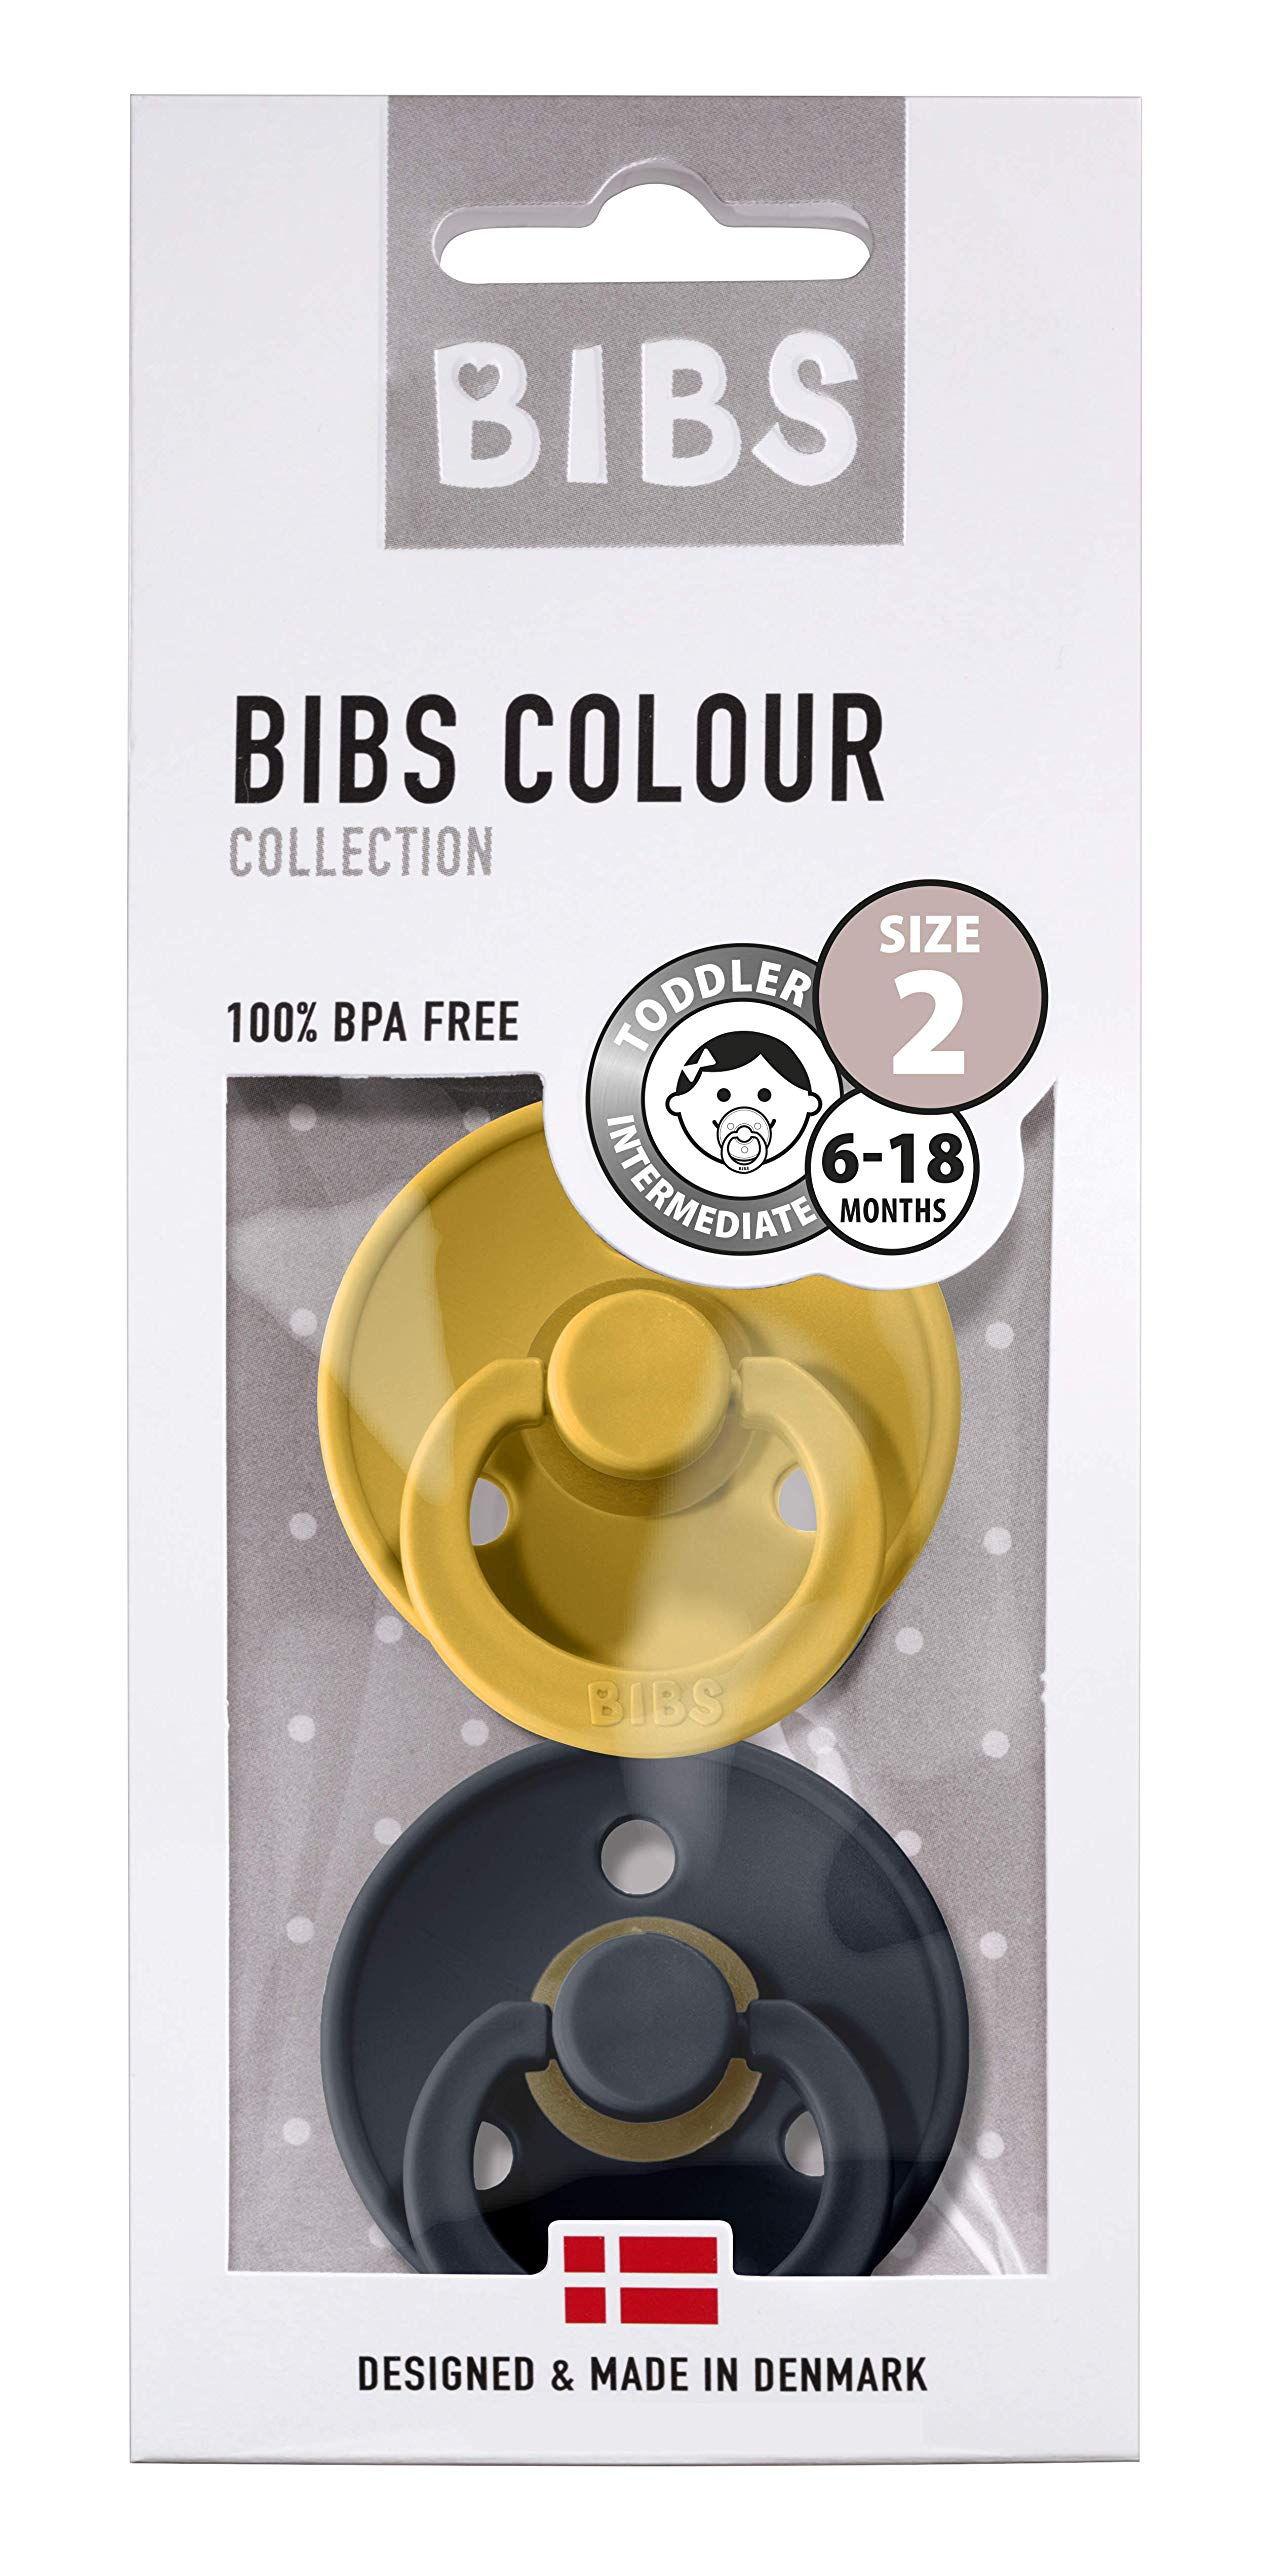 BIBS Soother Colour 2 Pack, BPA Free, Natural Rubber Dummy Pacifier, Size 2 (6-18 Month), Mustard/Smoke